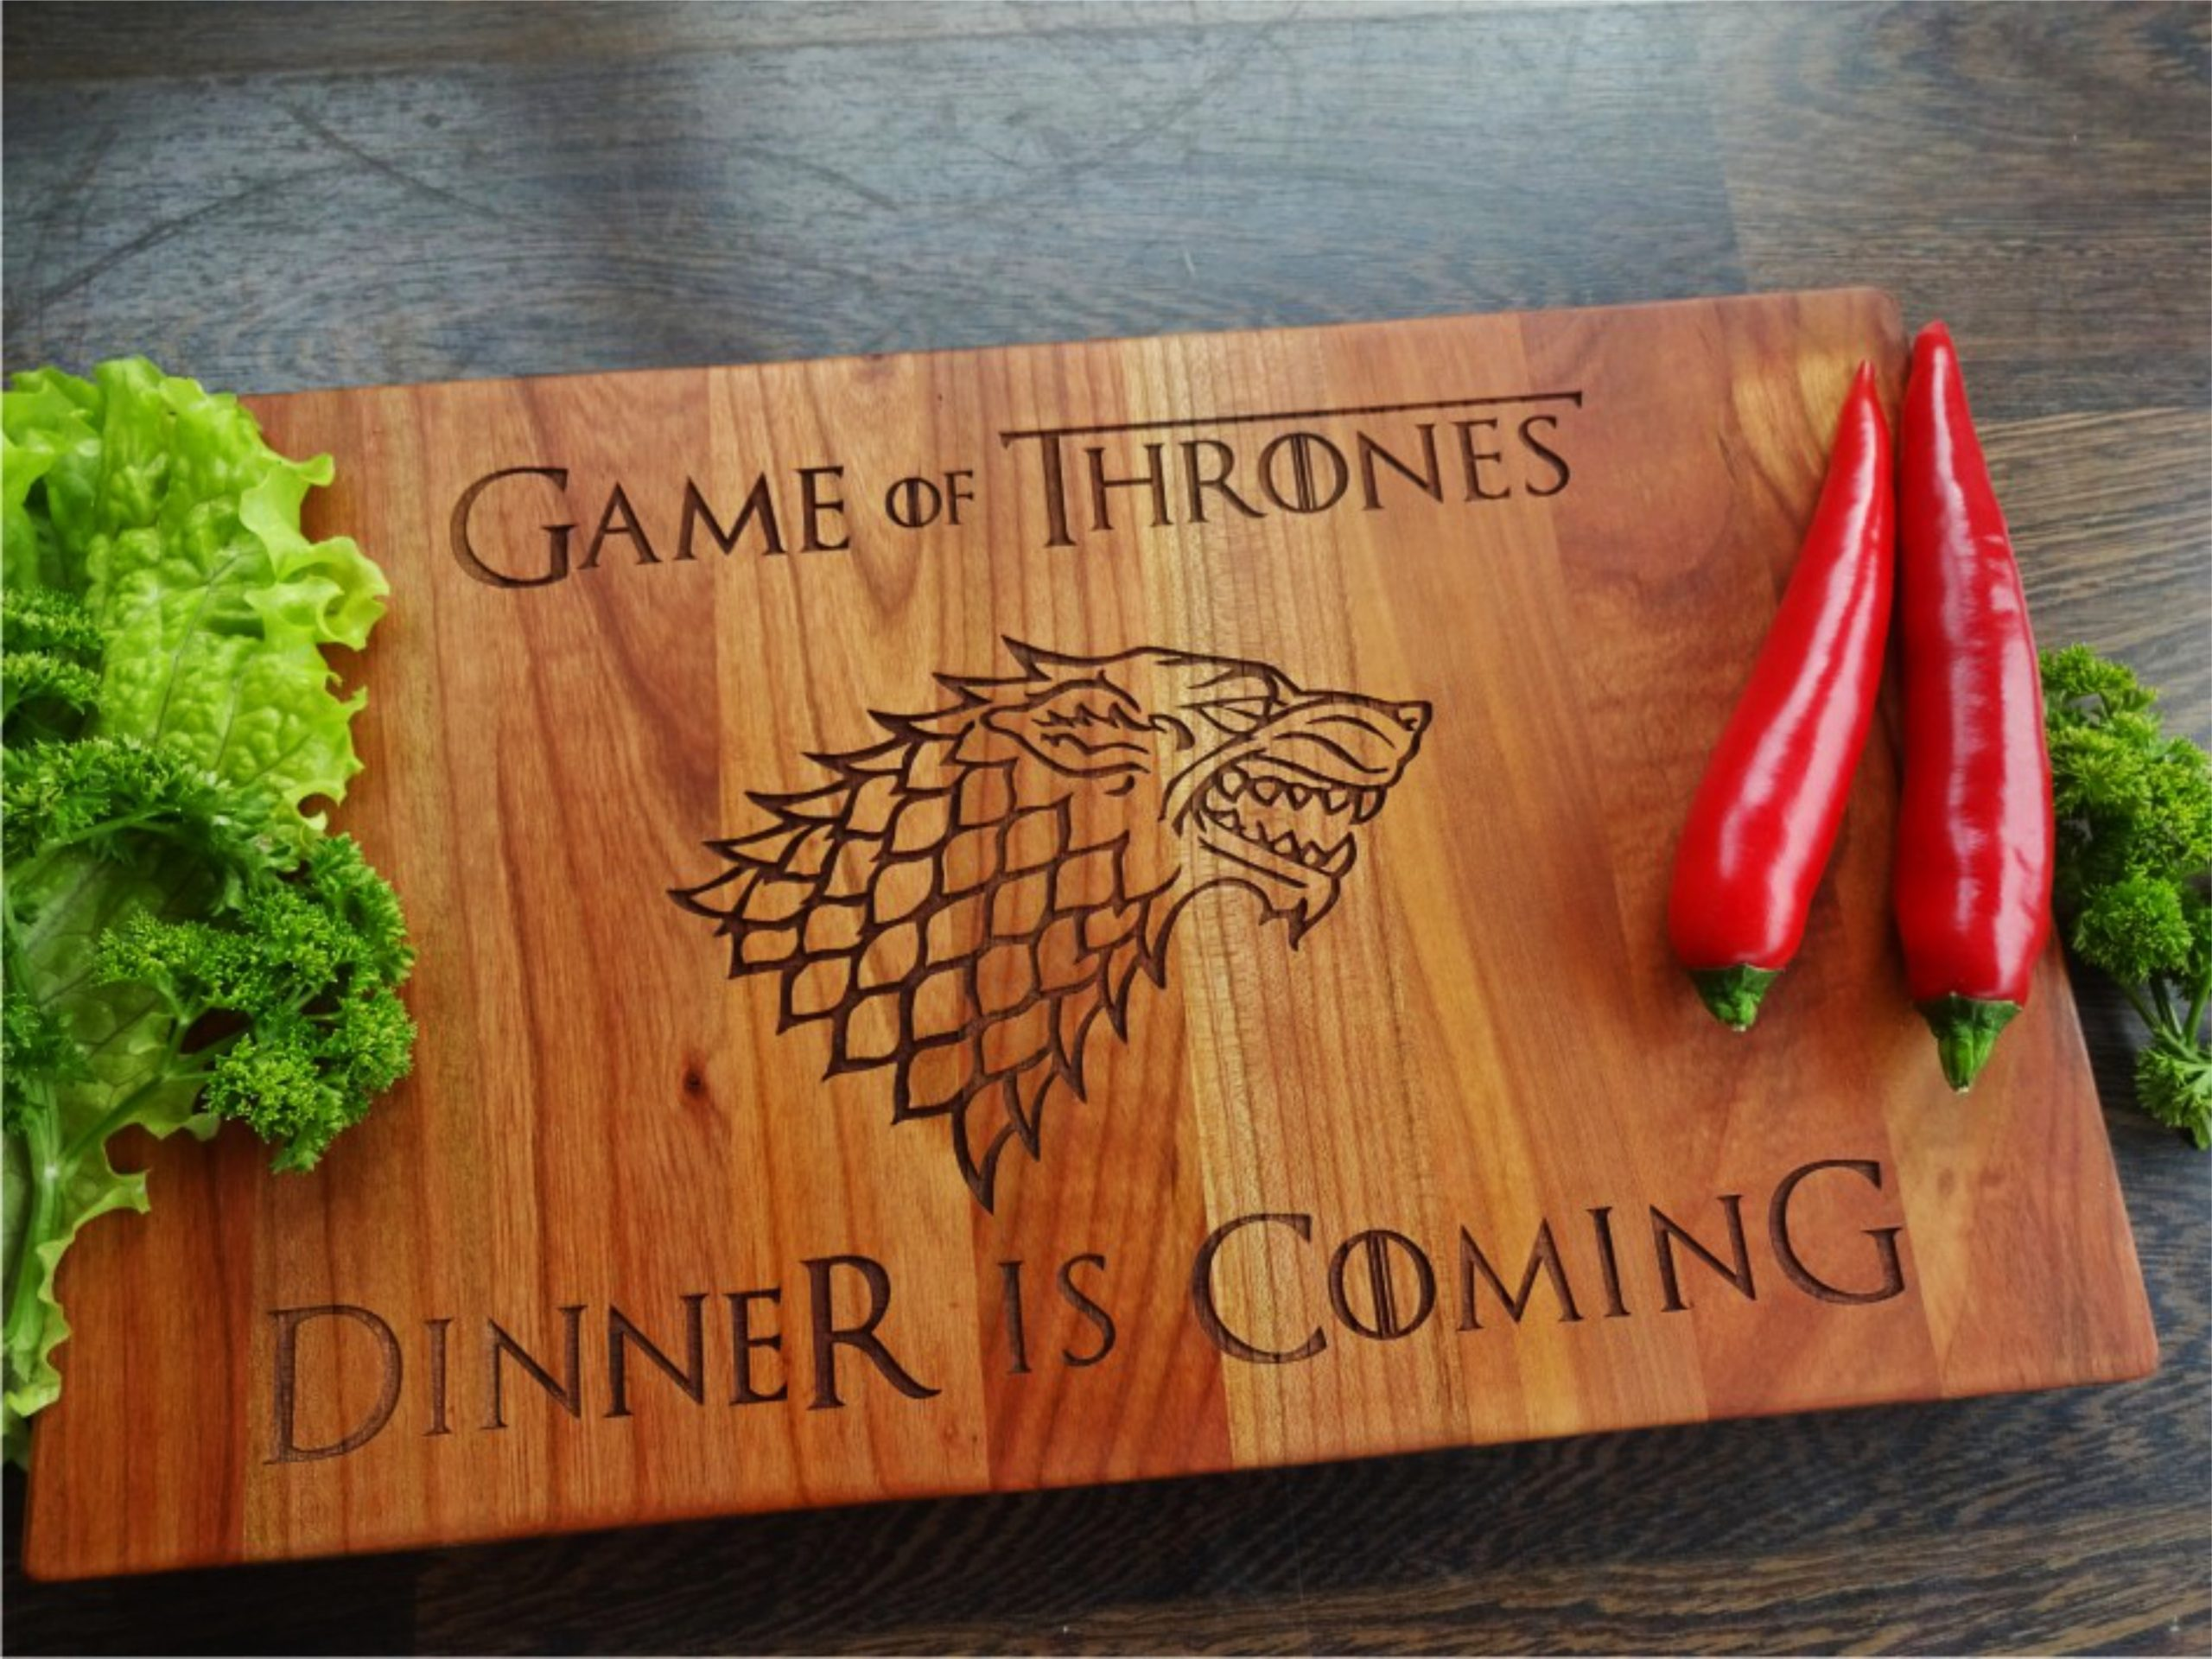 GAME of THRONES. Dinner is Coming Khaleesi.